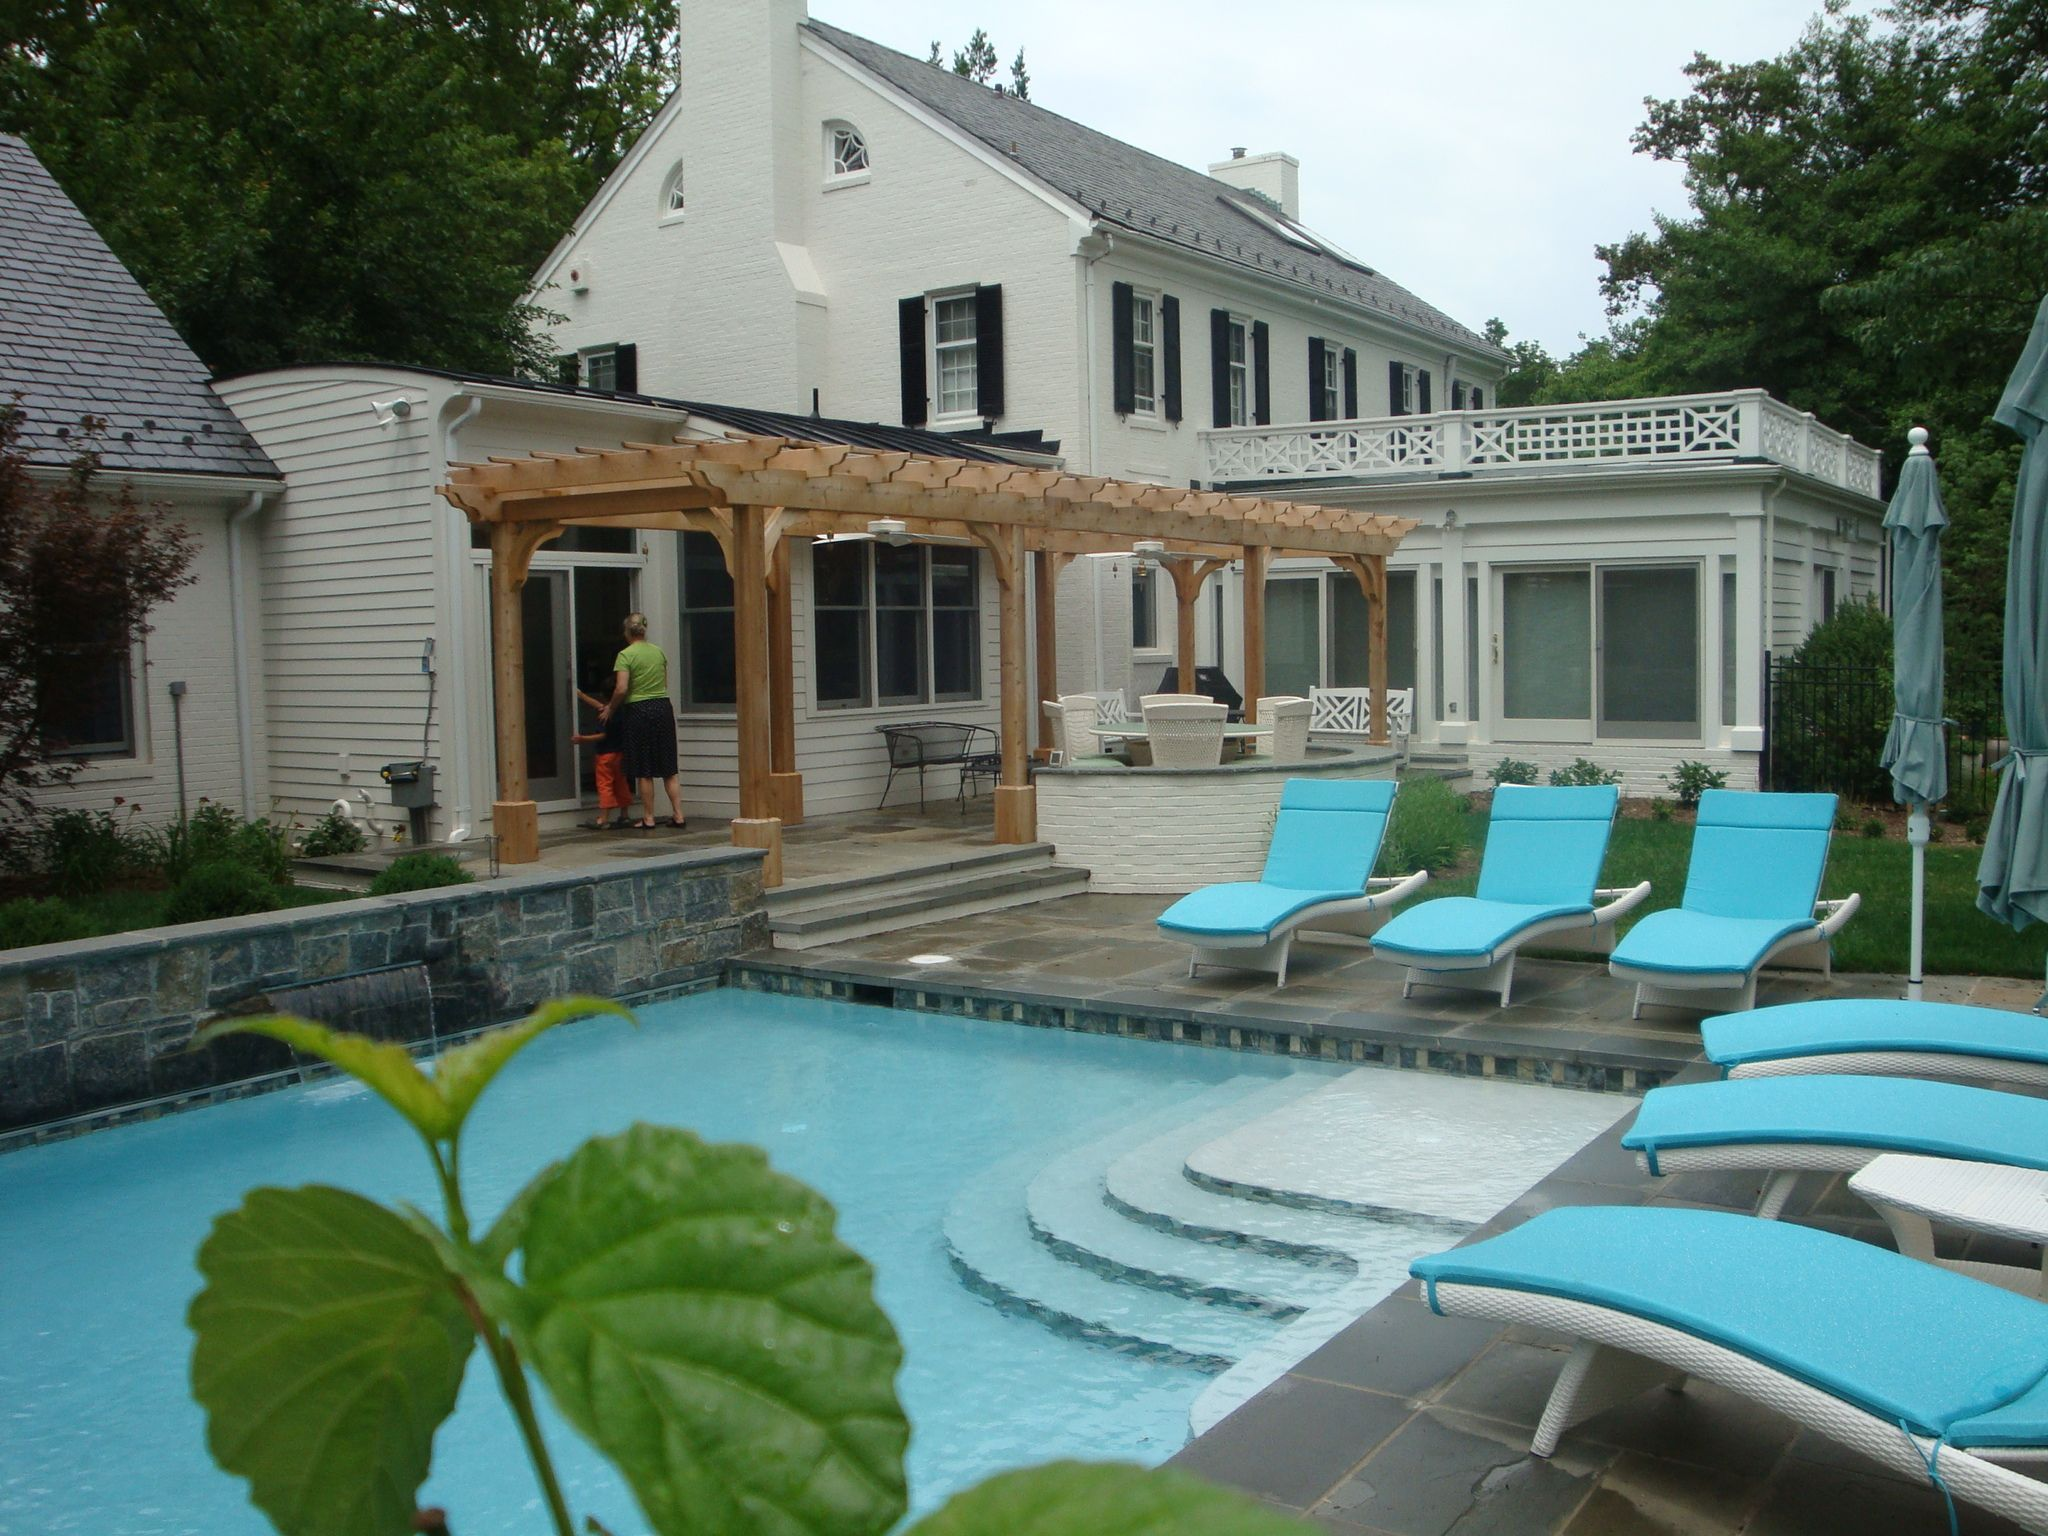 inground pool patio designs - Google Search | My Dream Backyard ...